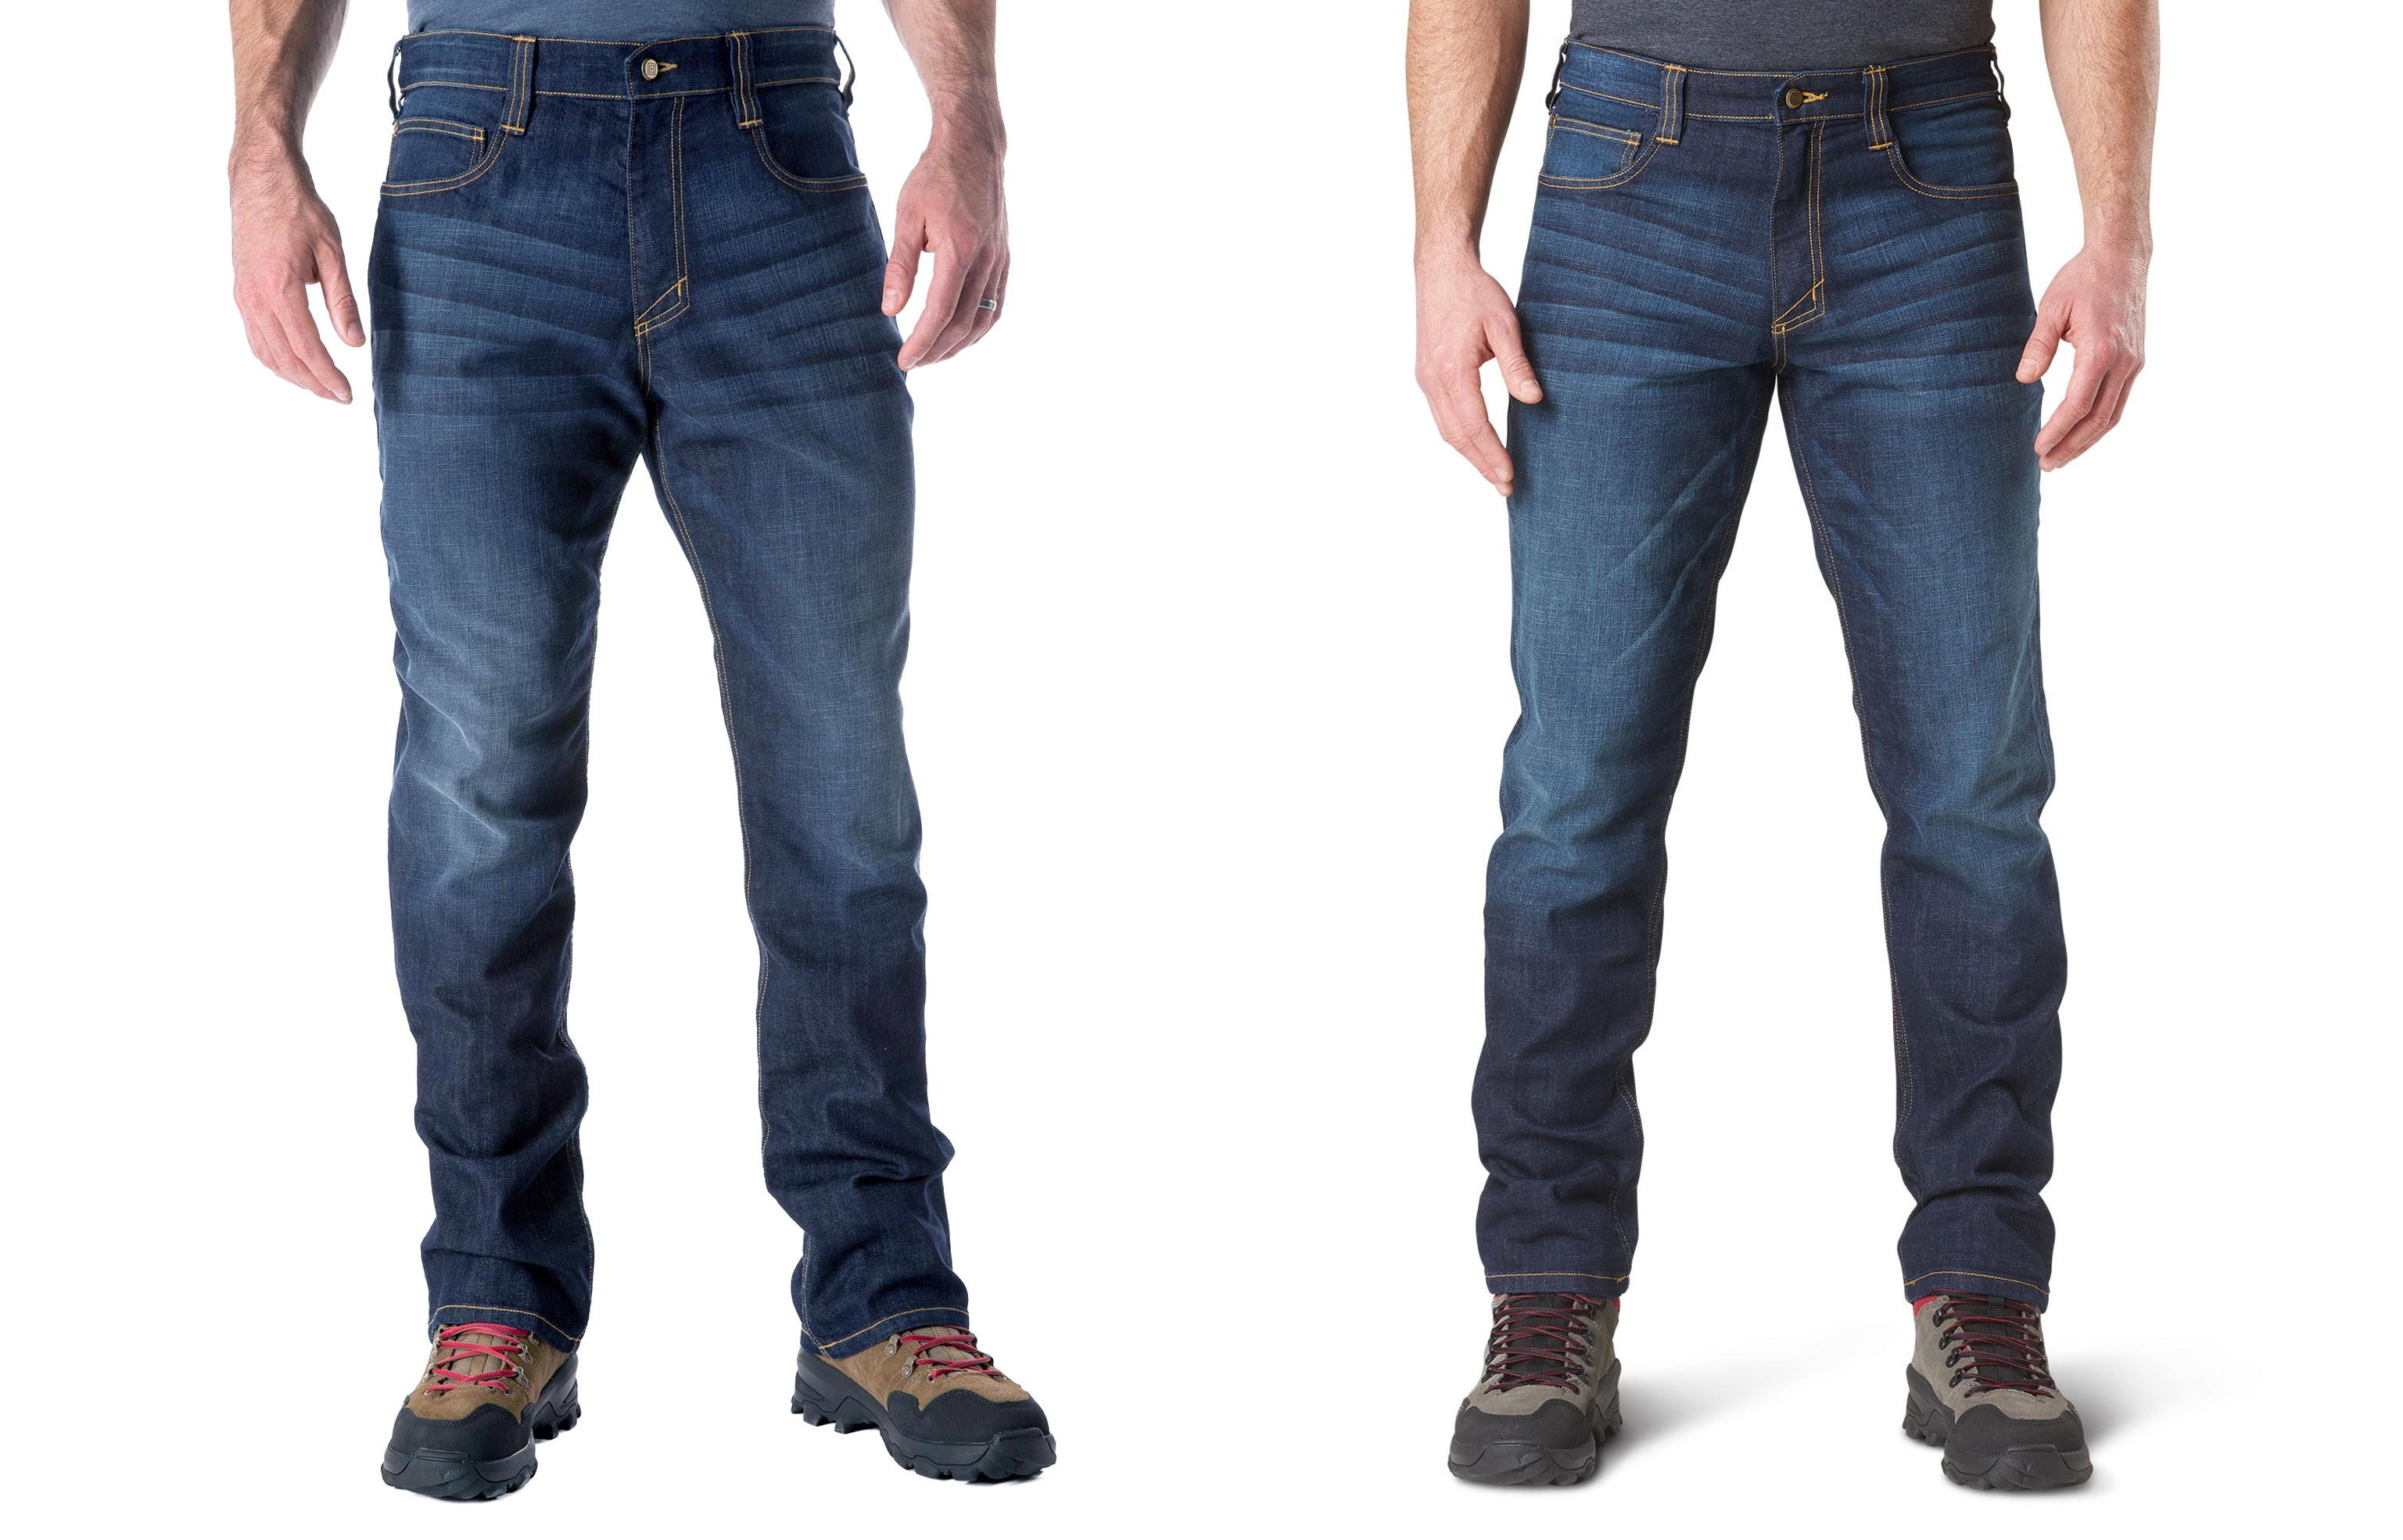 c4369c25 Left: straight-fit jeans in Dark Wash Indigo. Right: the same jeans